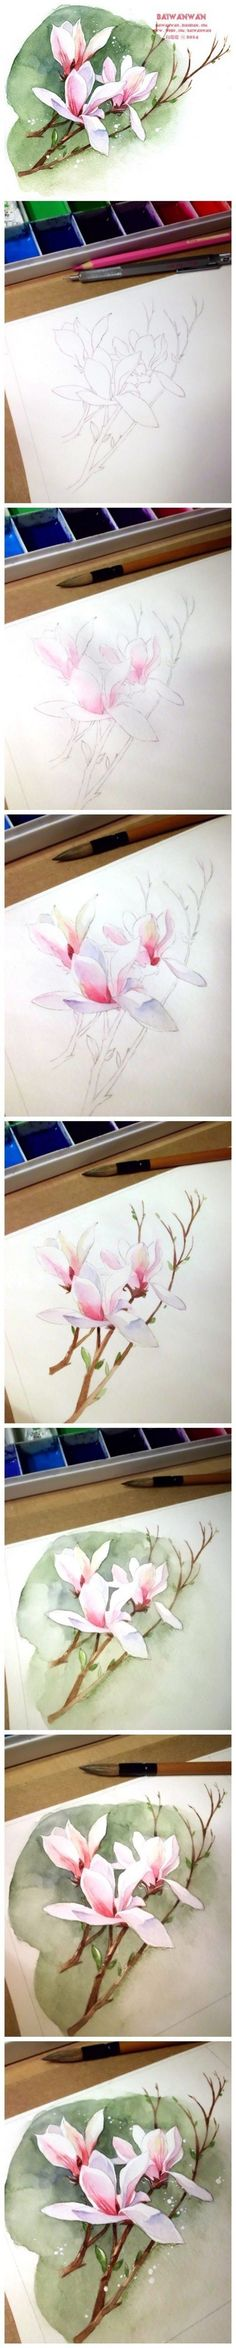 20 Delicate Colorful Watercolor Flower Painting Tutorials In Images-HOMESTHETICS (7)